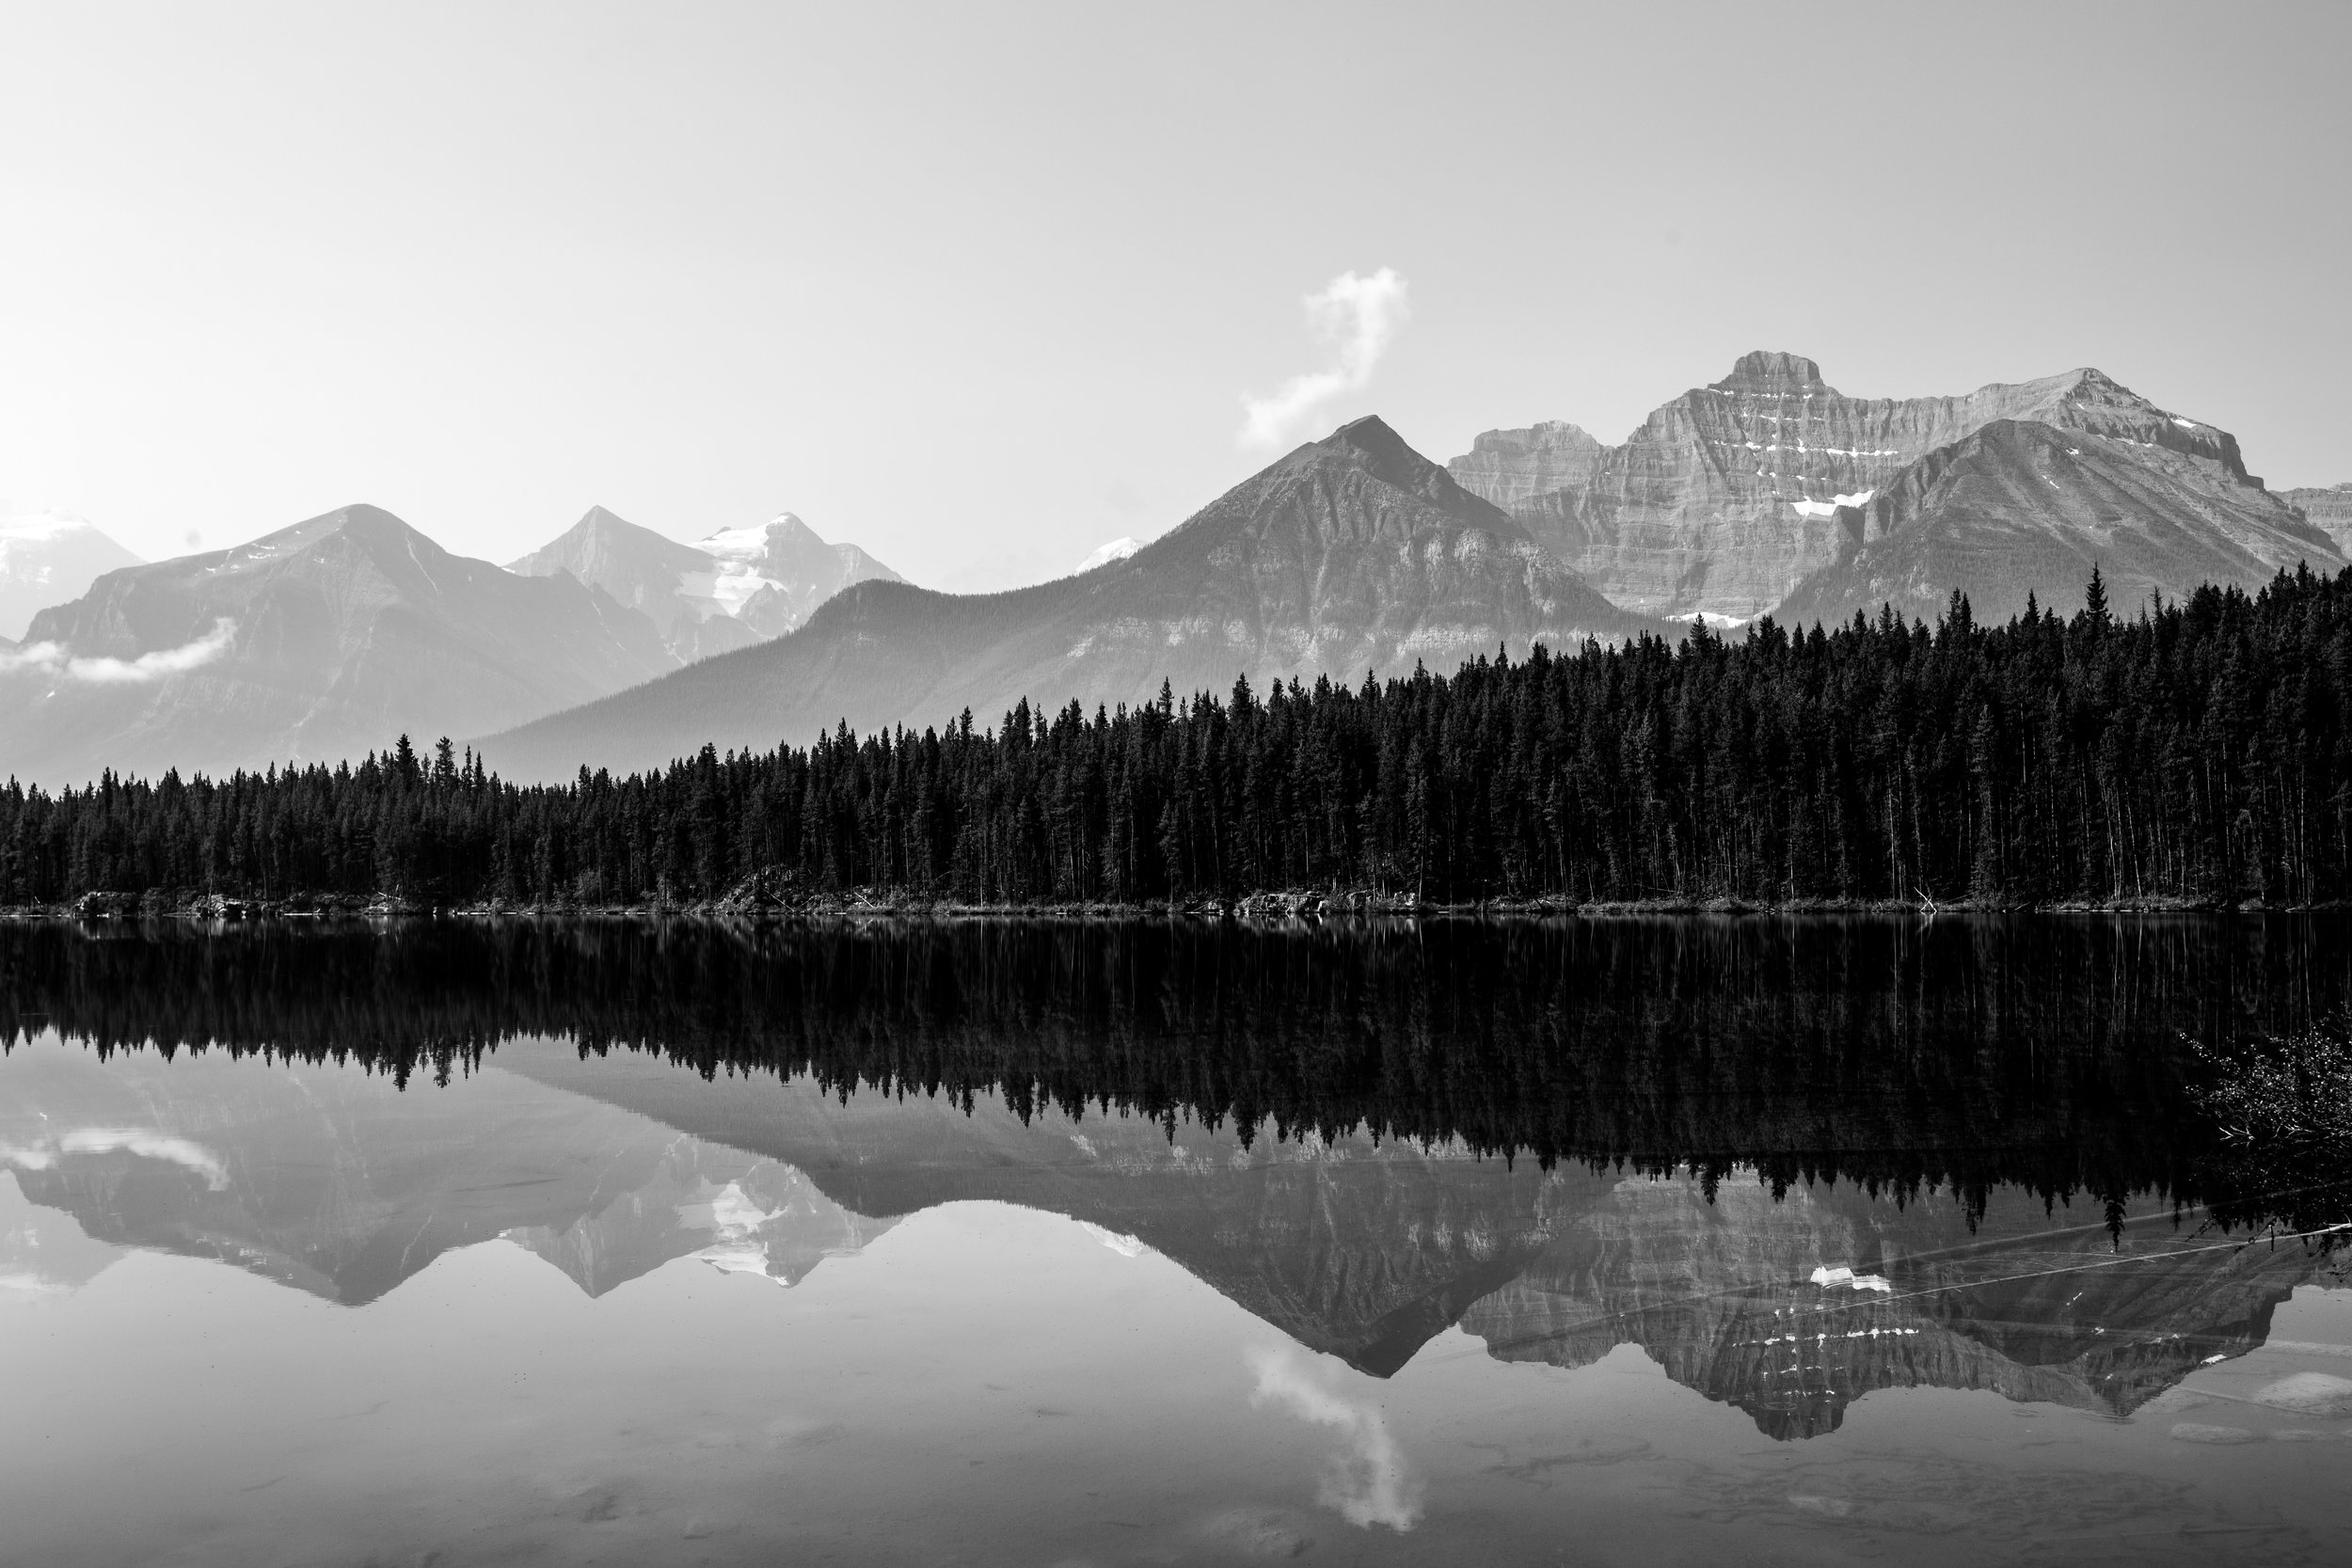 nicole-daacke-photography-banff-national-park-yoho-jasper-canada-parks-alberta-landscape-photographer-canadian-rockies-elopement-photographer-kananaskis-landscape-photos-4909.jpg